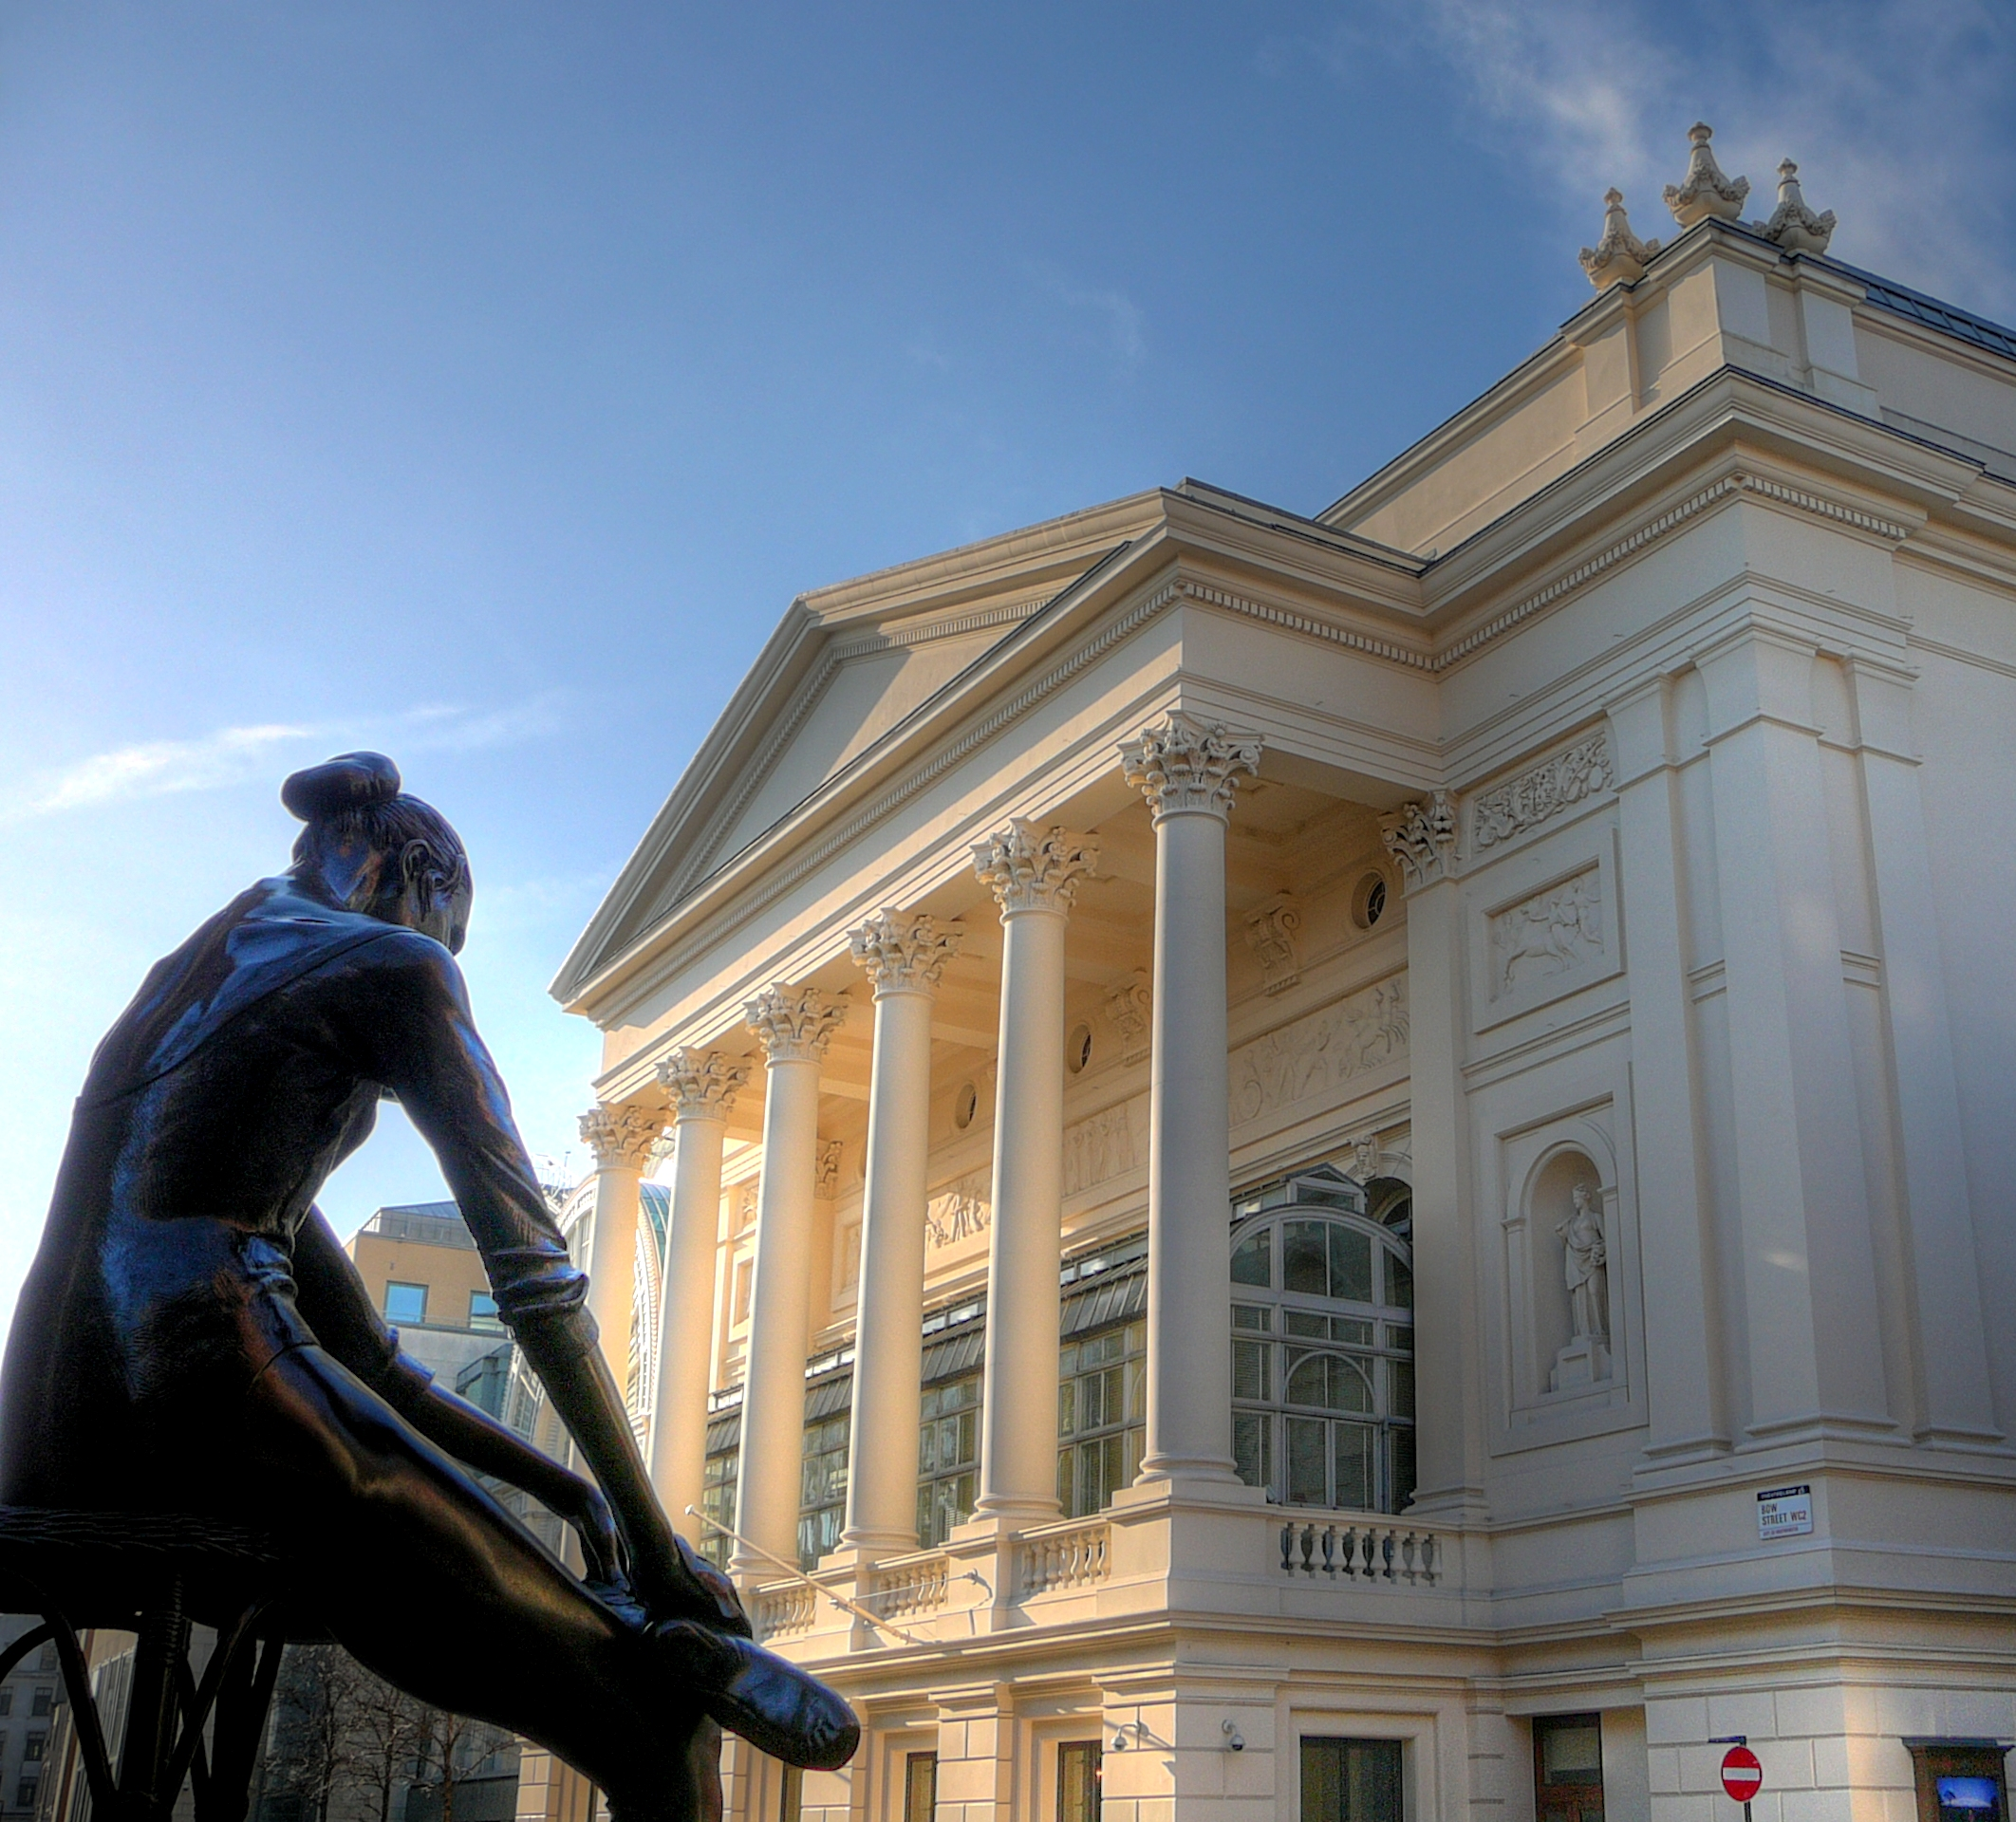 The Royal Opera House's Bow Street frontage with [[Enzo Plazzotta|Plazzotta]]'s statue, ''Young Dancer'', in the foreground